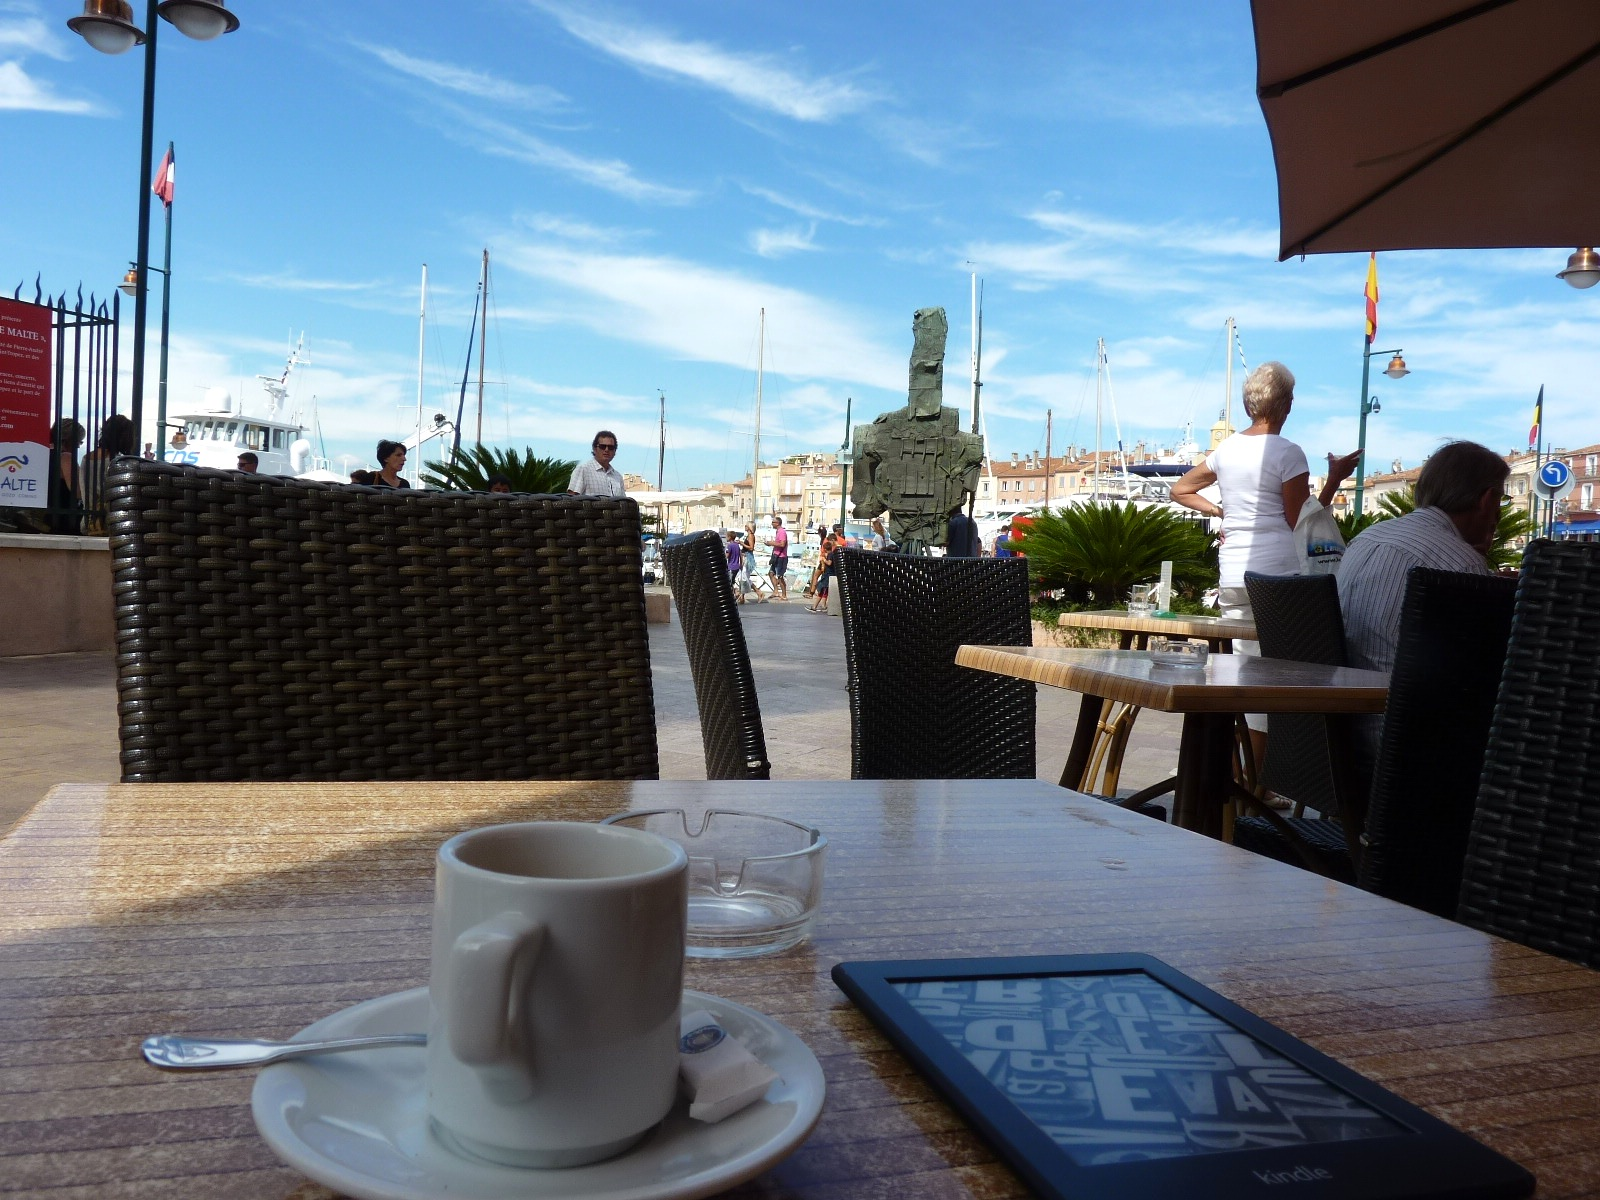 St-Tropez-cafe-on-the-plaza.jpg